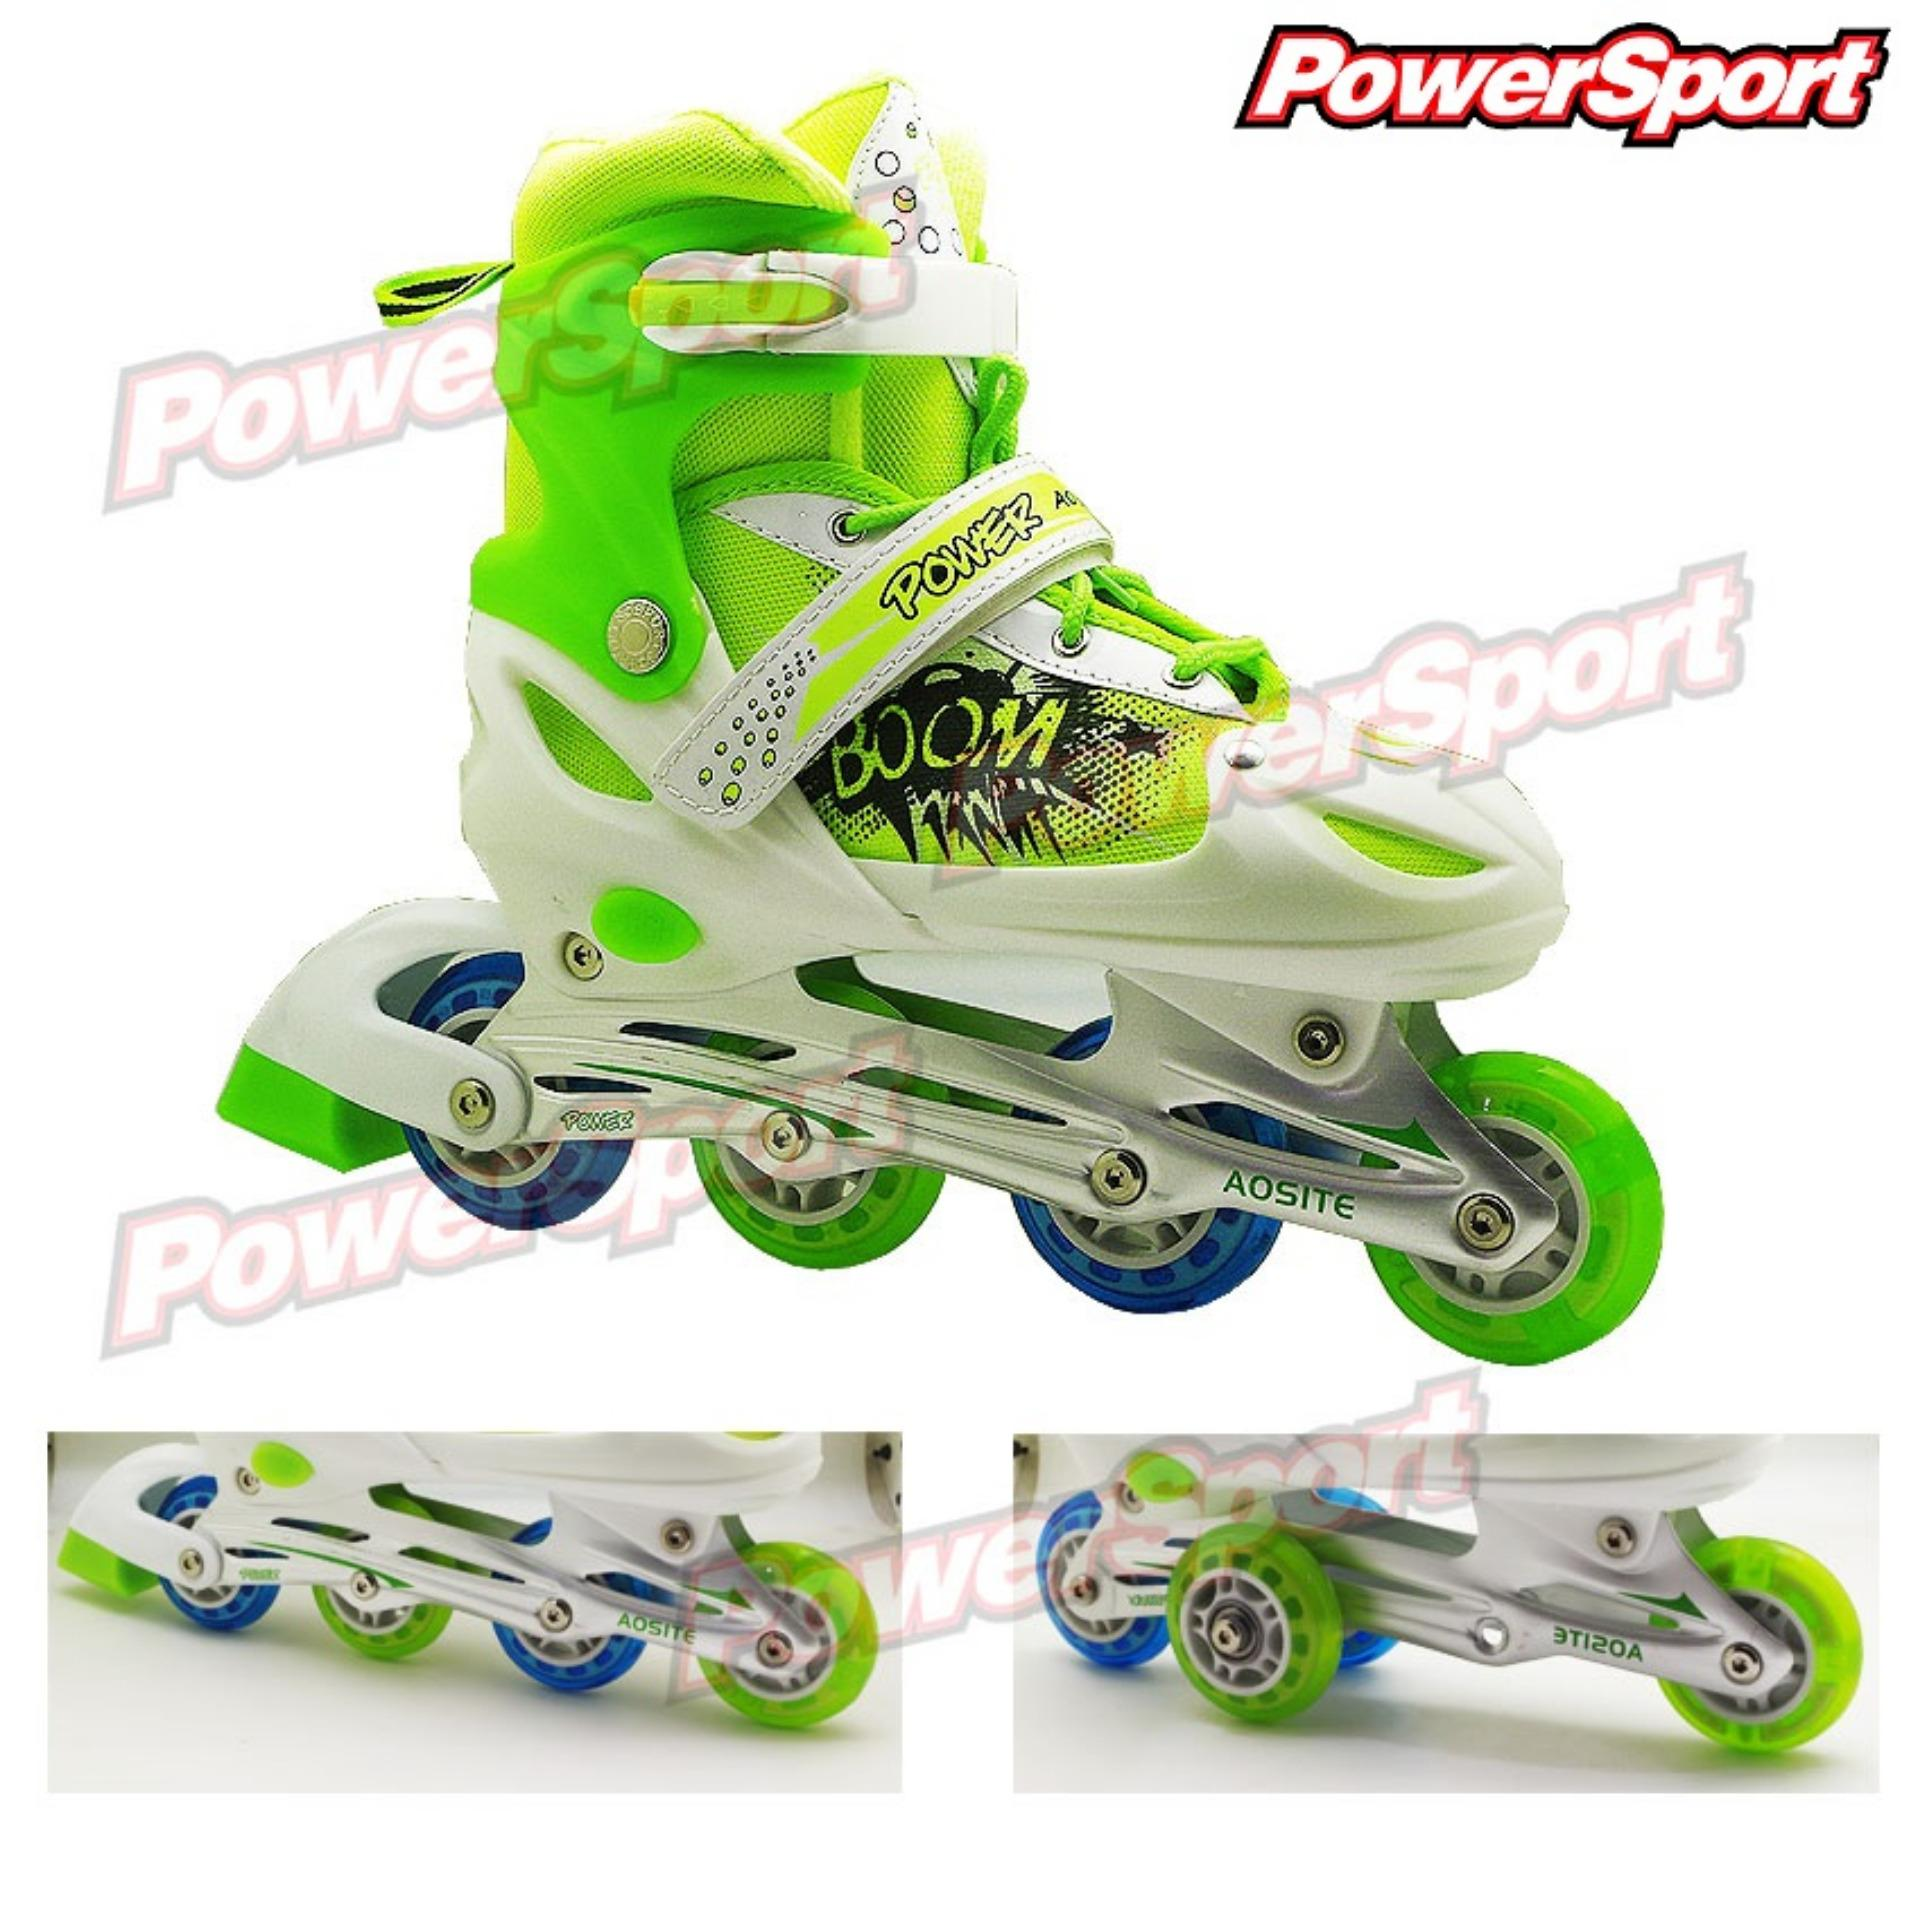 Harga Powersport Boom Inline Skate Sepatu Roda Light Up Adjustable Wheel L 38 42 Asli Power Sport